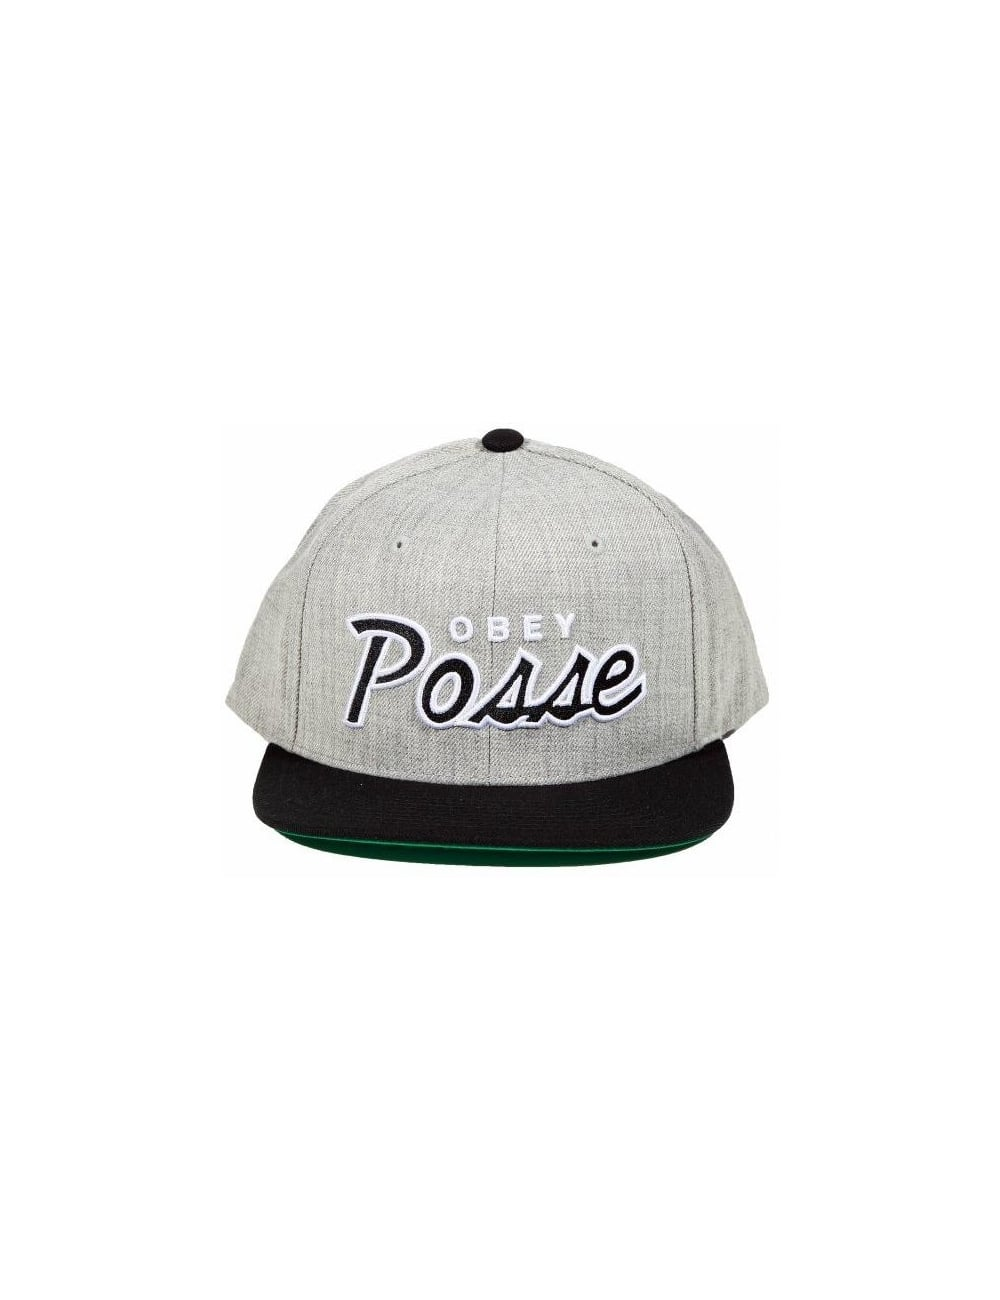 c662d5fdbcf Obey Clothing Obey Posse Snapback - Heather Grey Black - Hat Shop ...